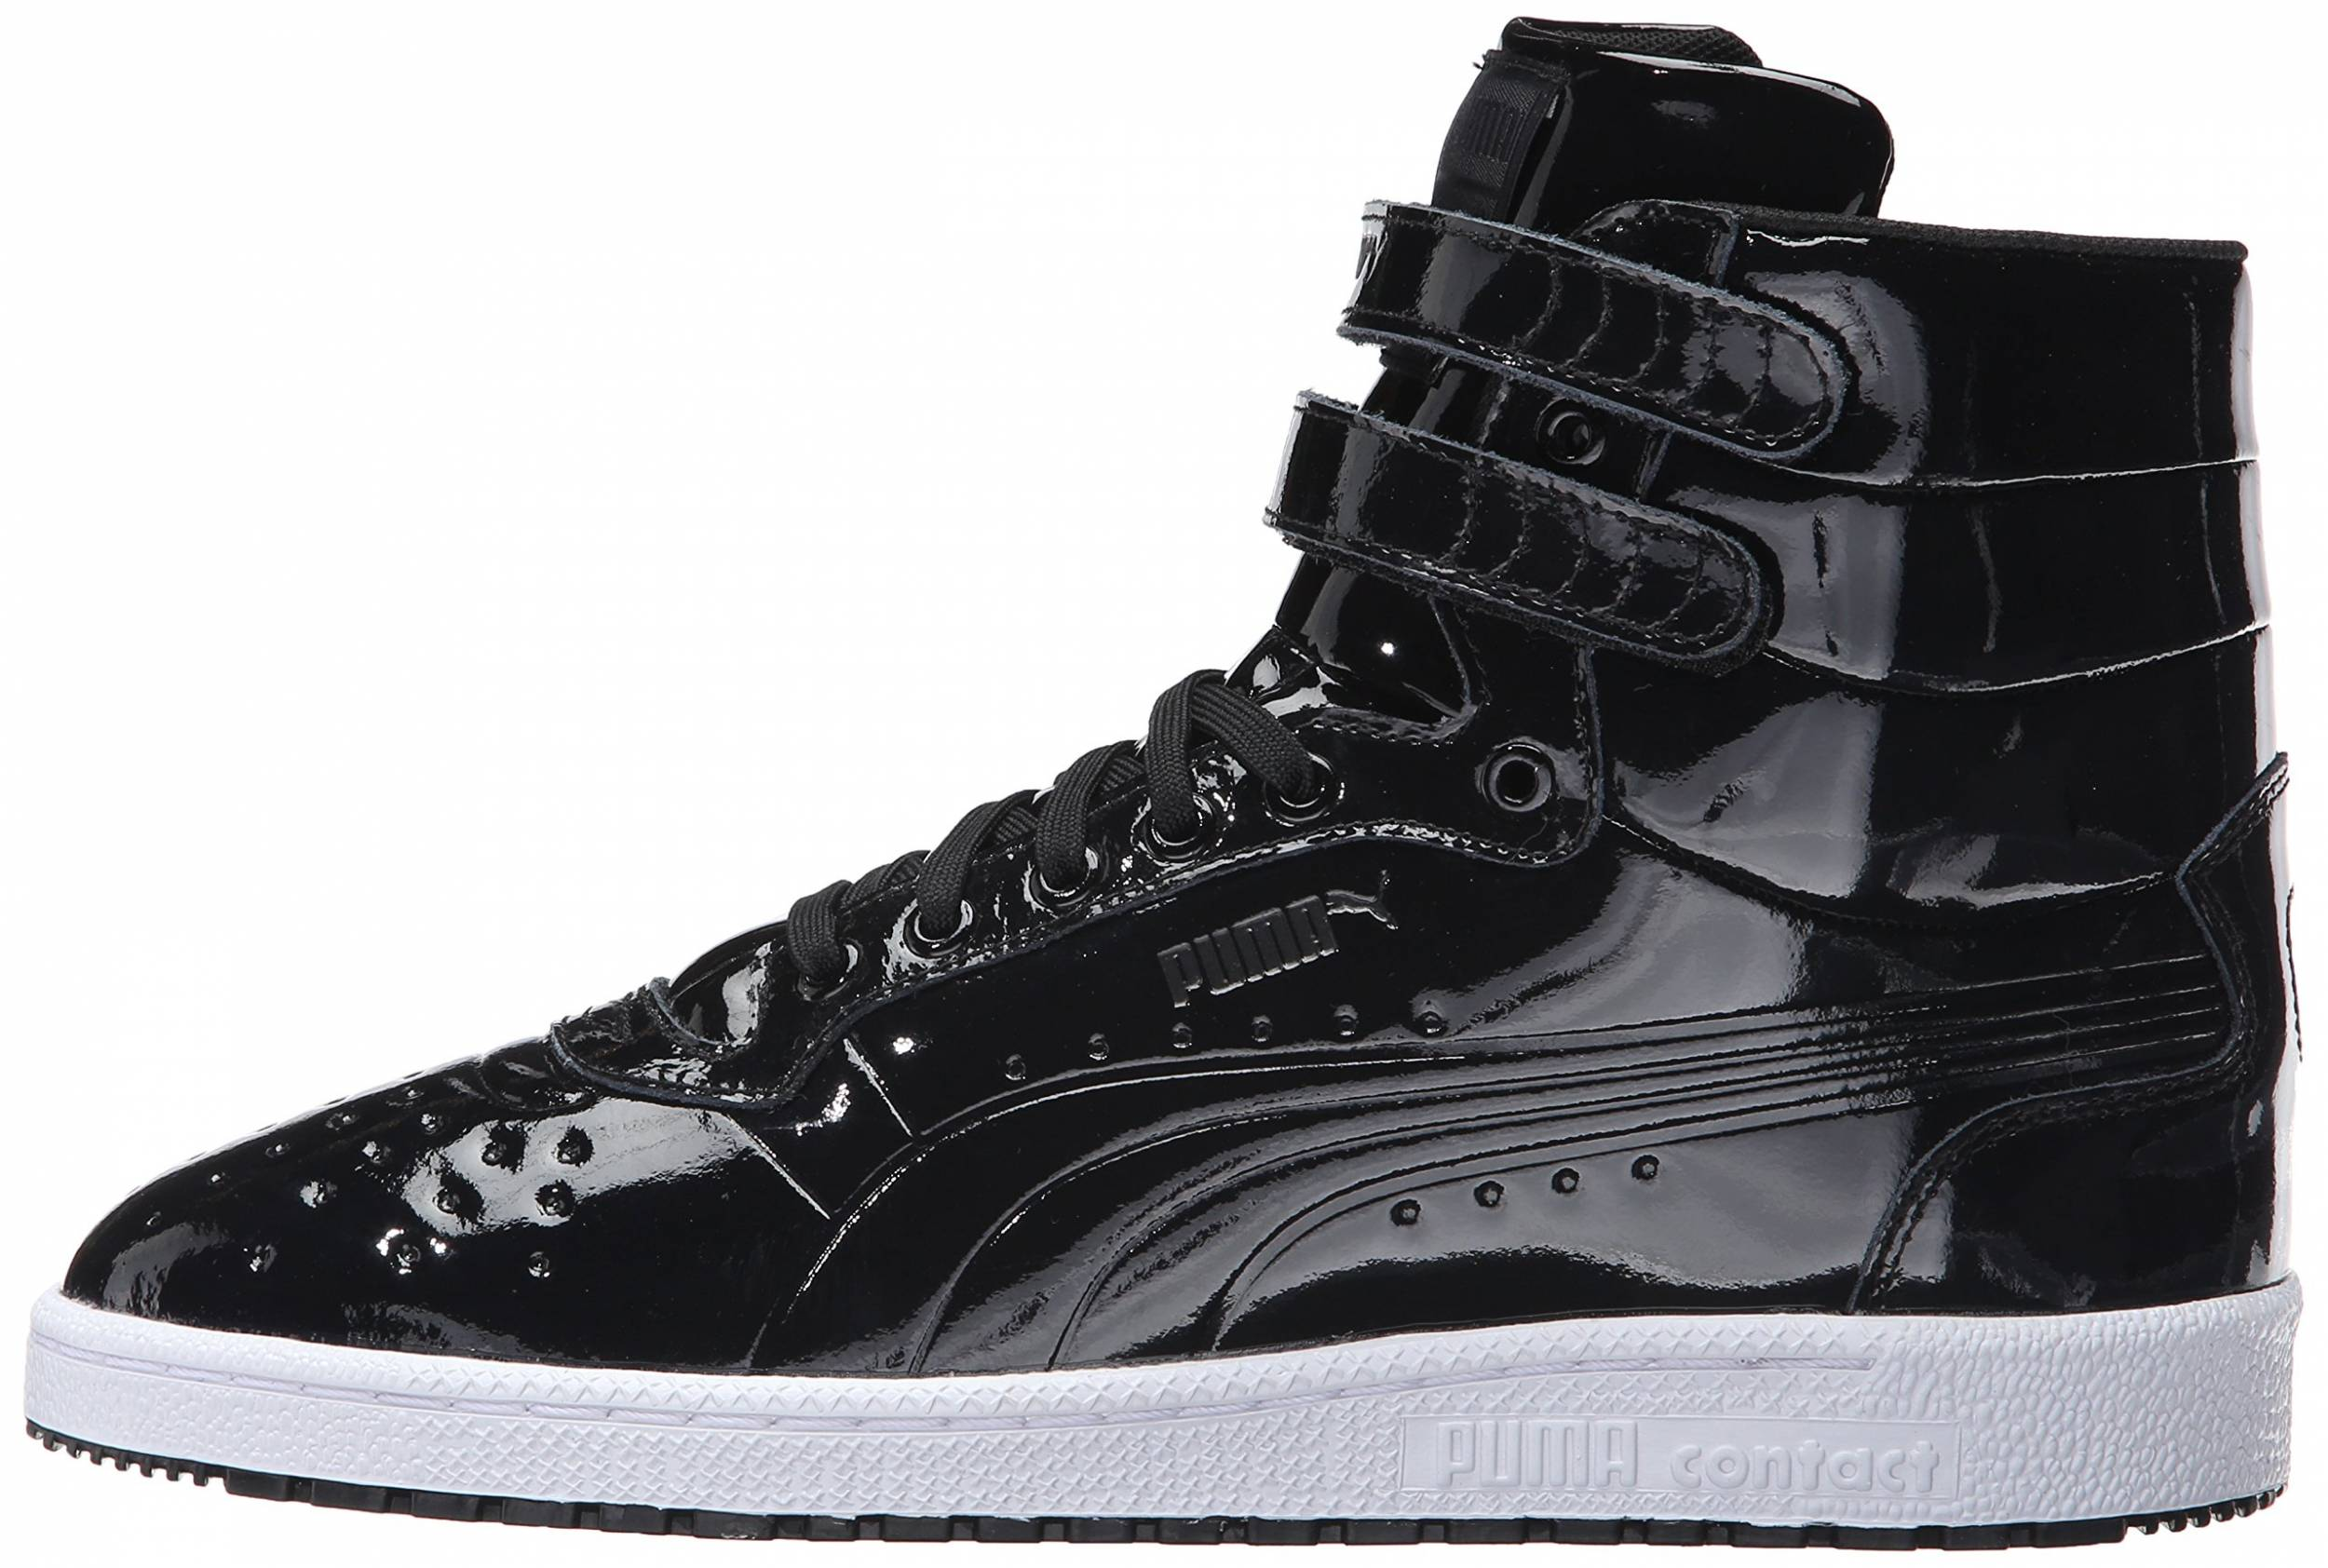 Save 36% on Puma High Top Sneakers (11